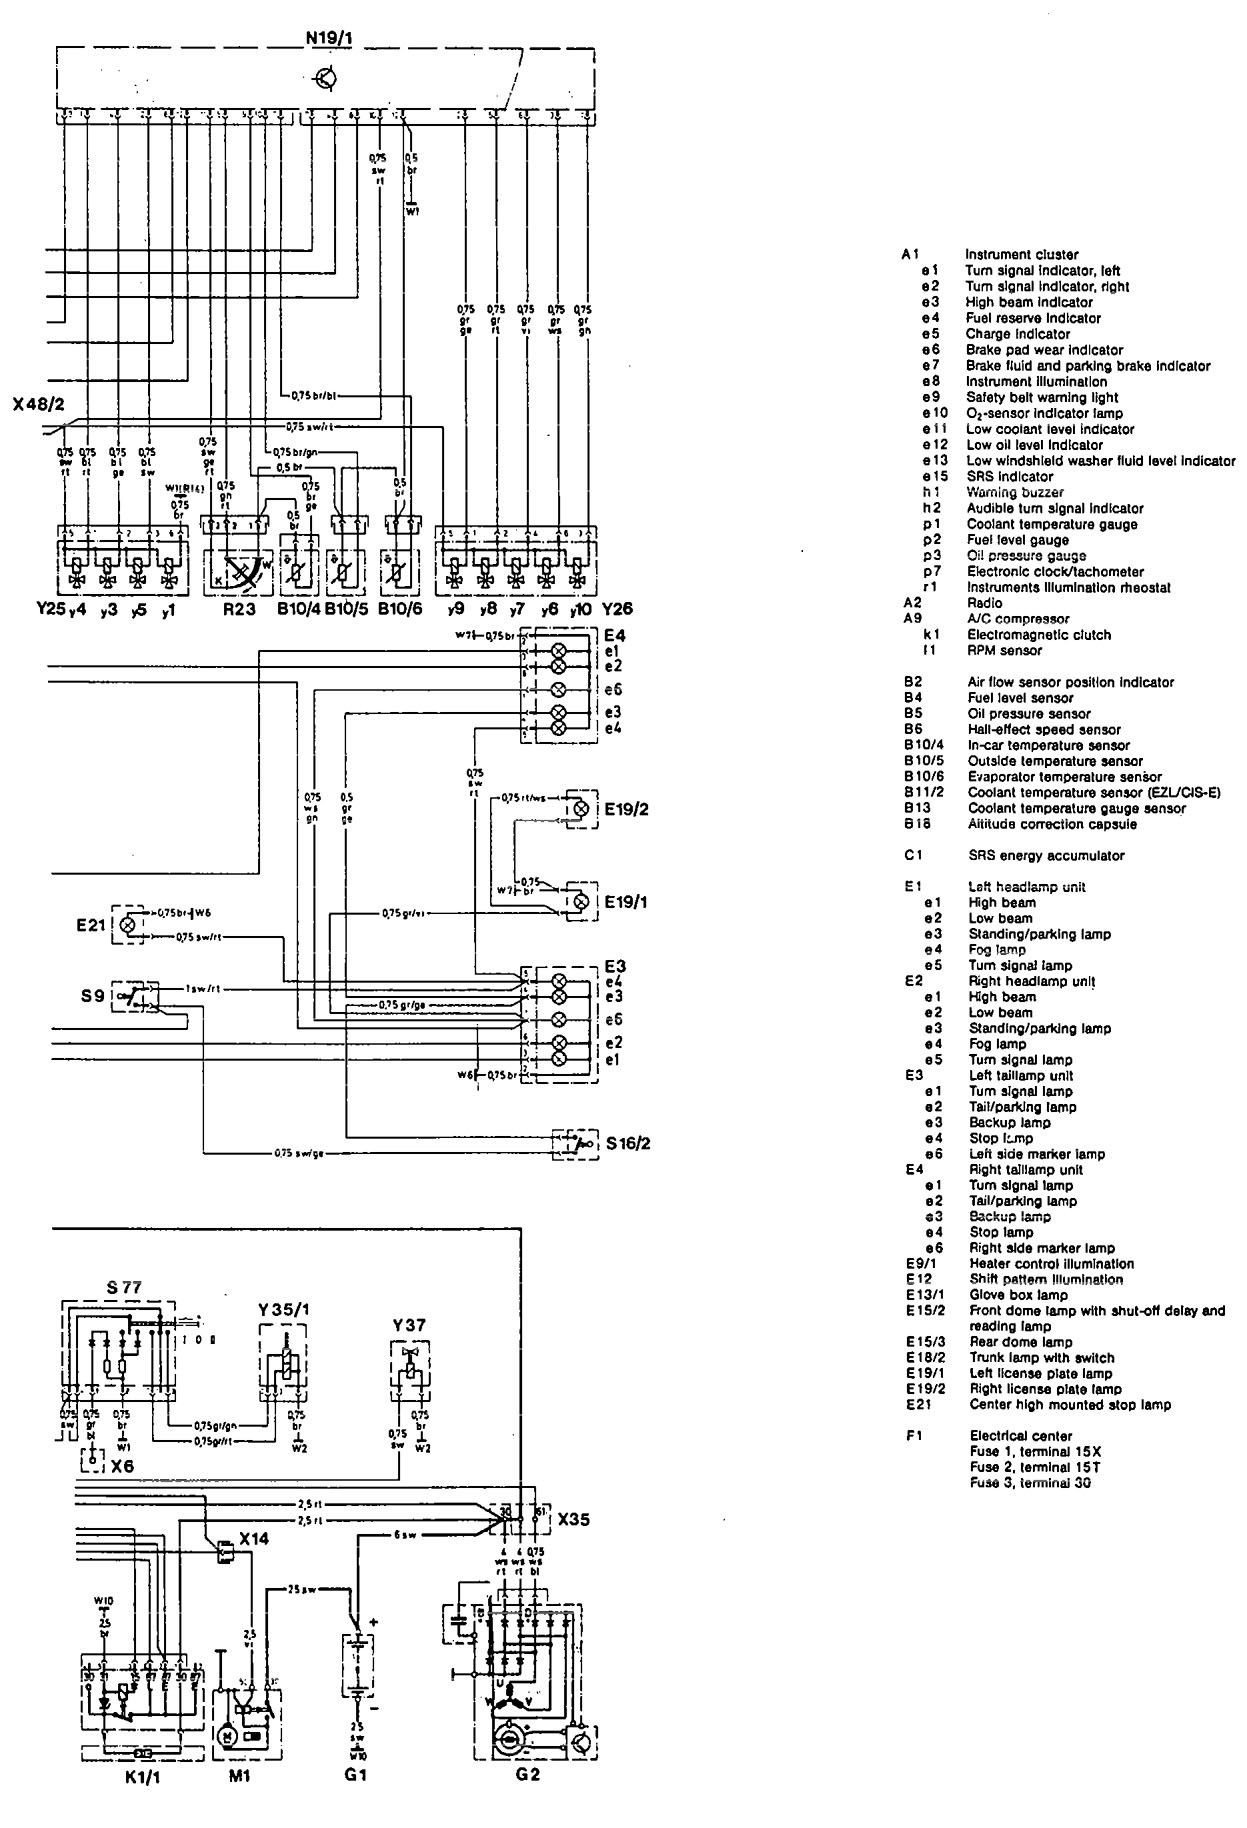 car charging system wiring diagram pop up camper mercedes 190e 1992 diagrams